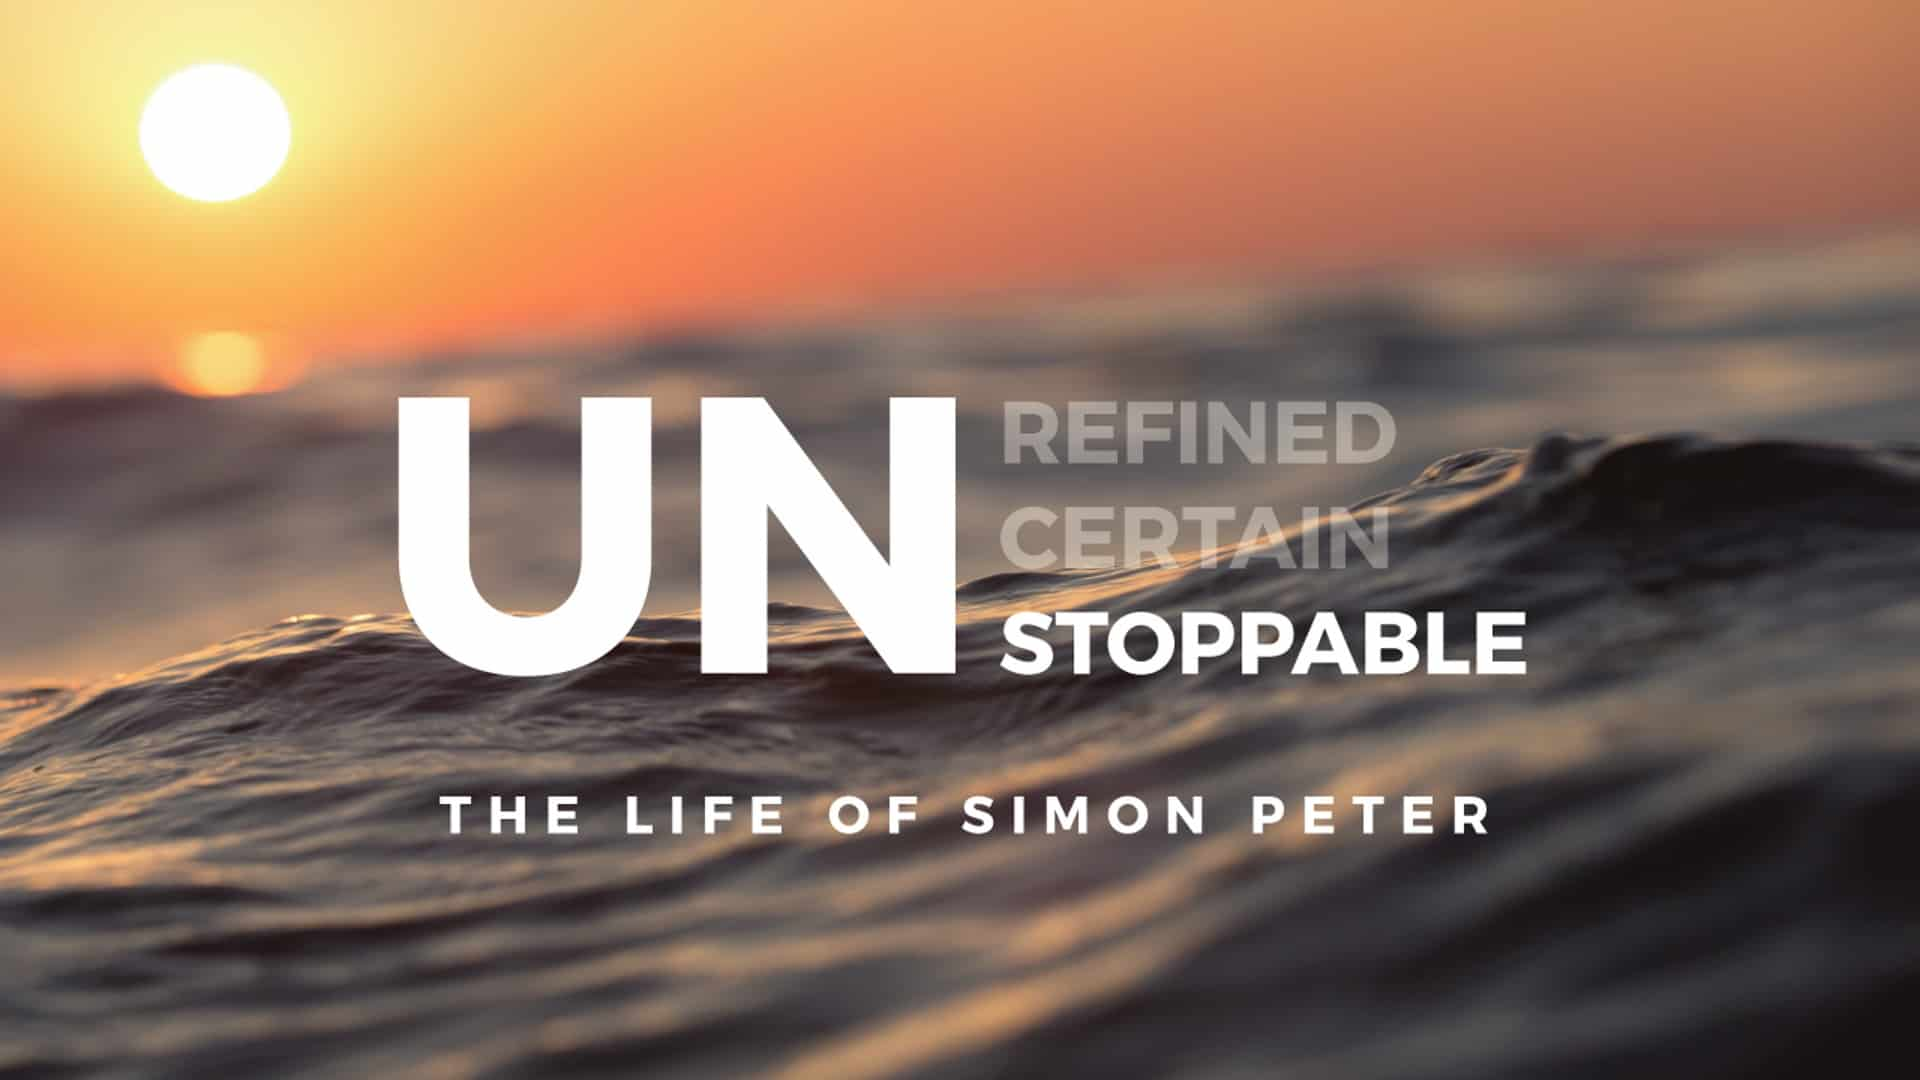 Unstoppable Purpose: The Calling of Simon Peter